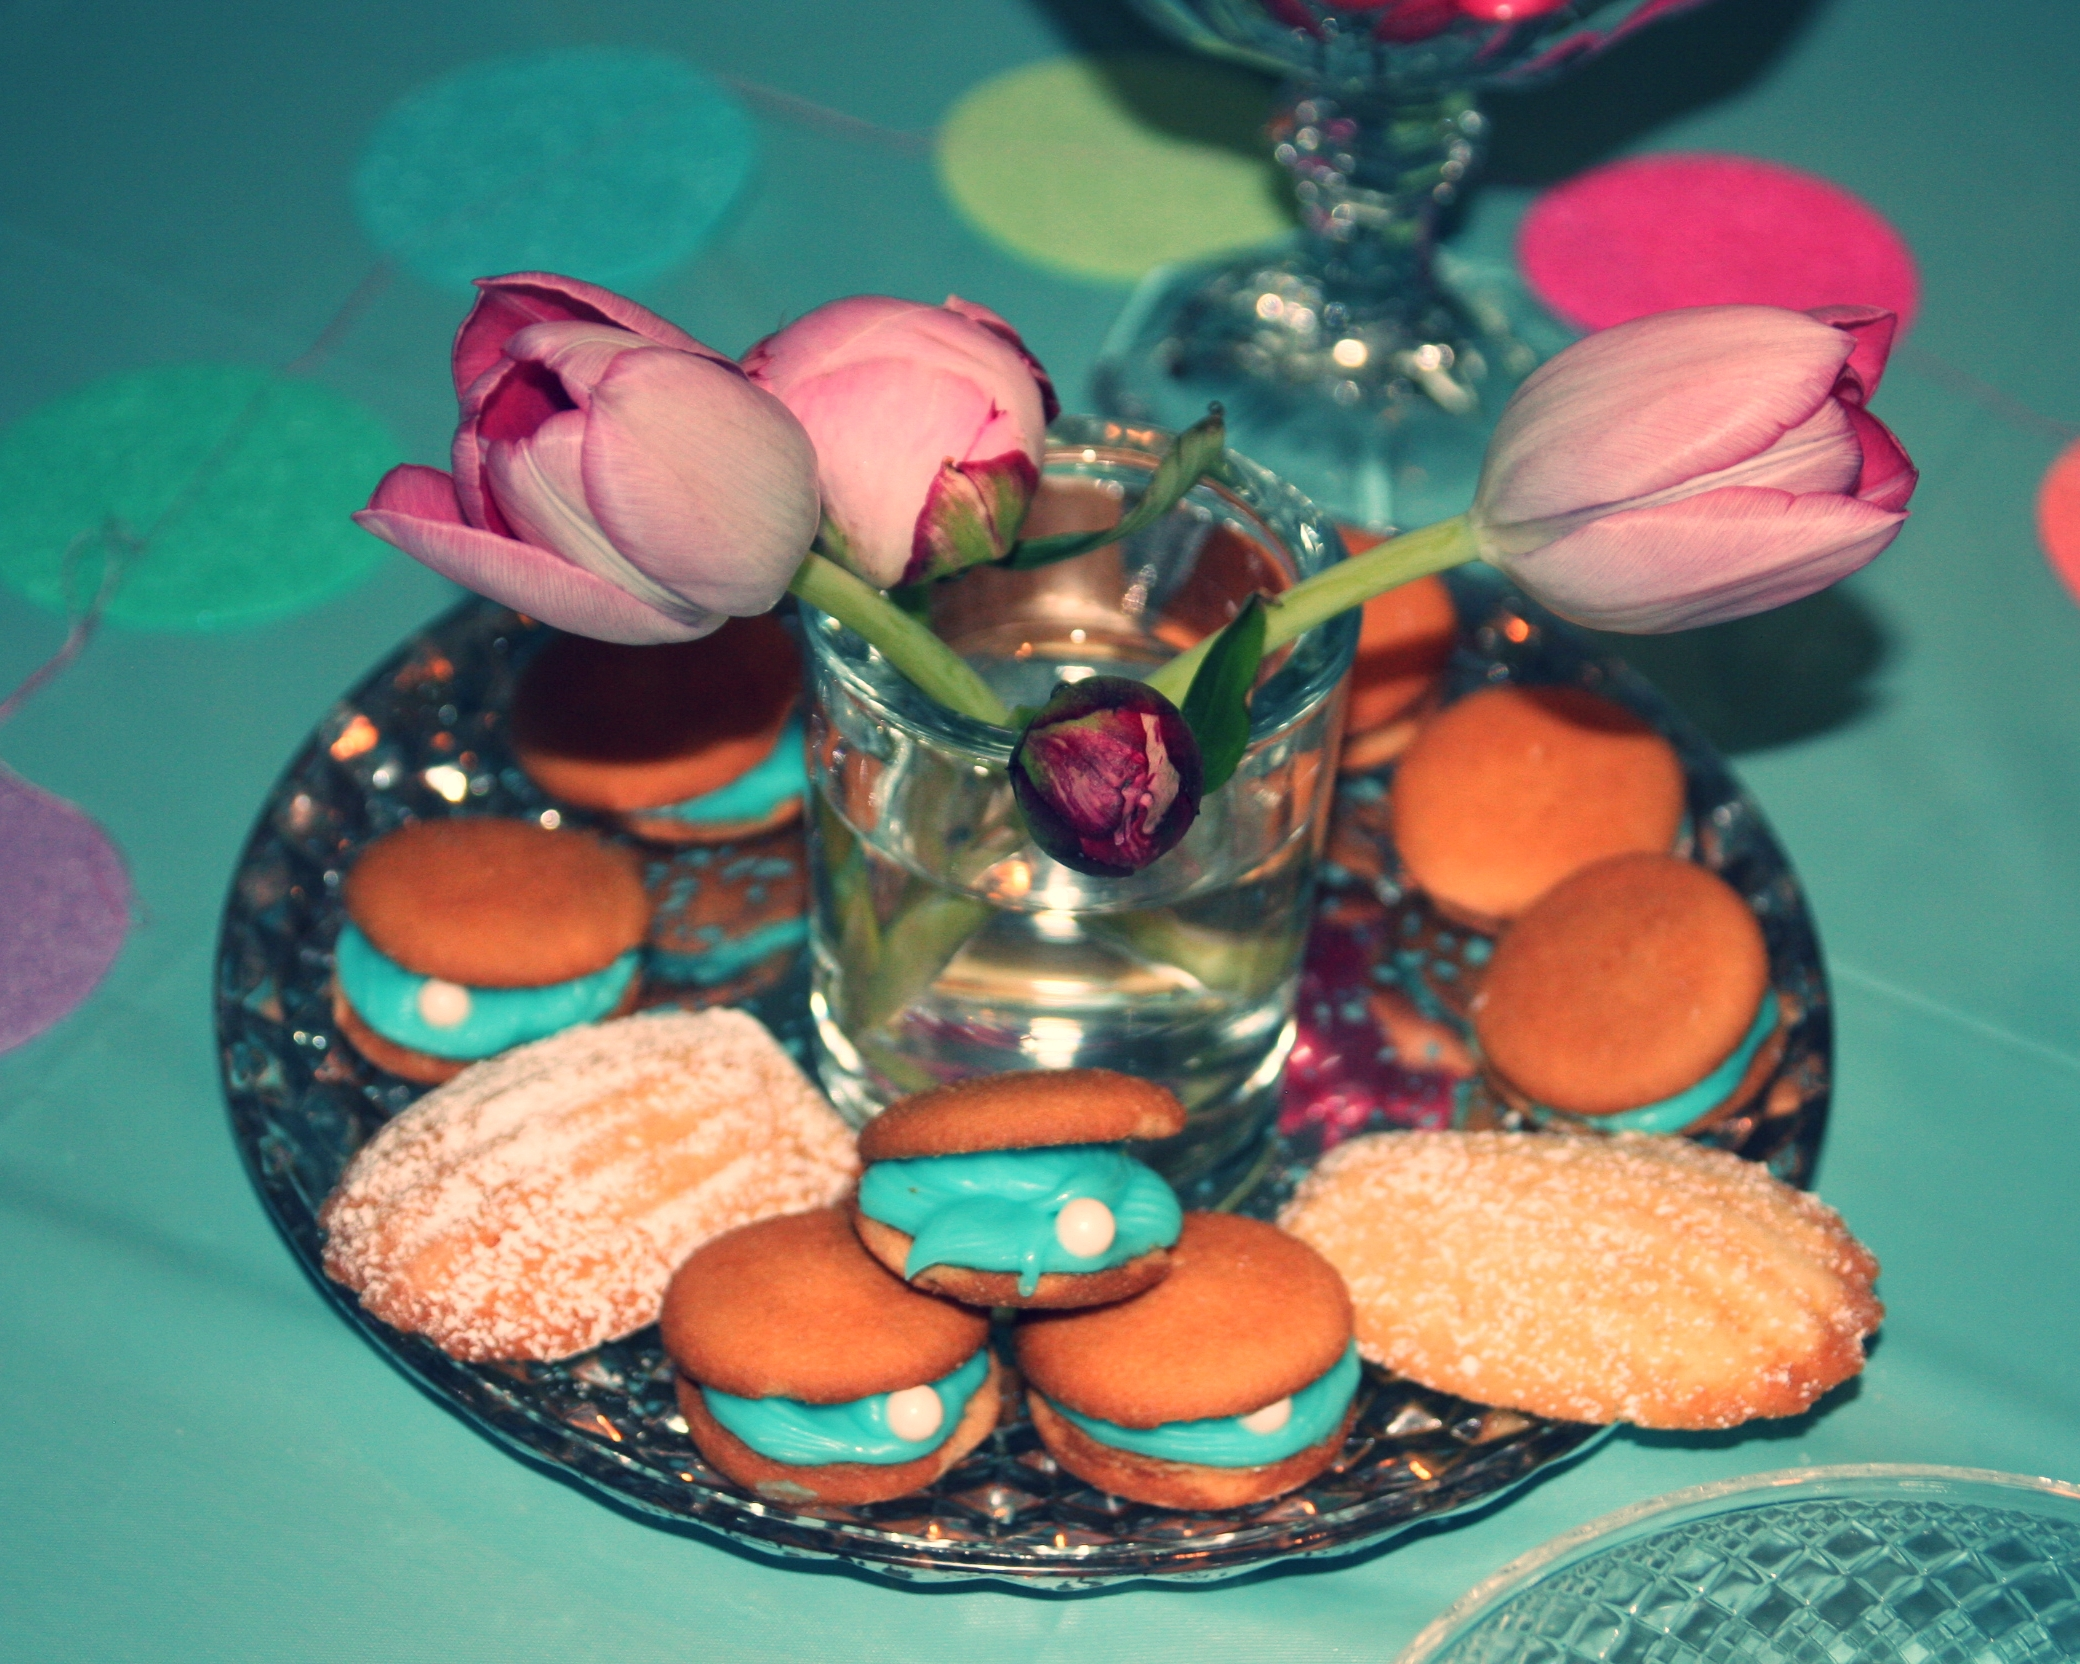 clam & madeline cookies by the PINK HATTER